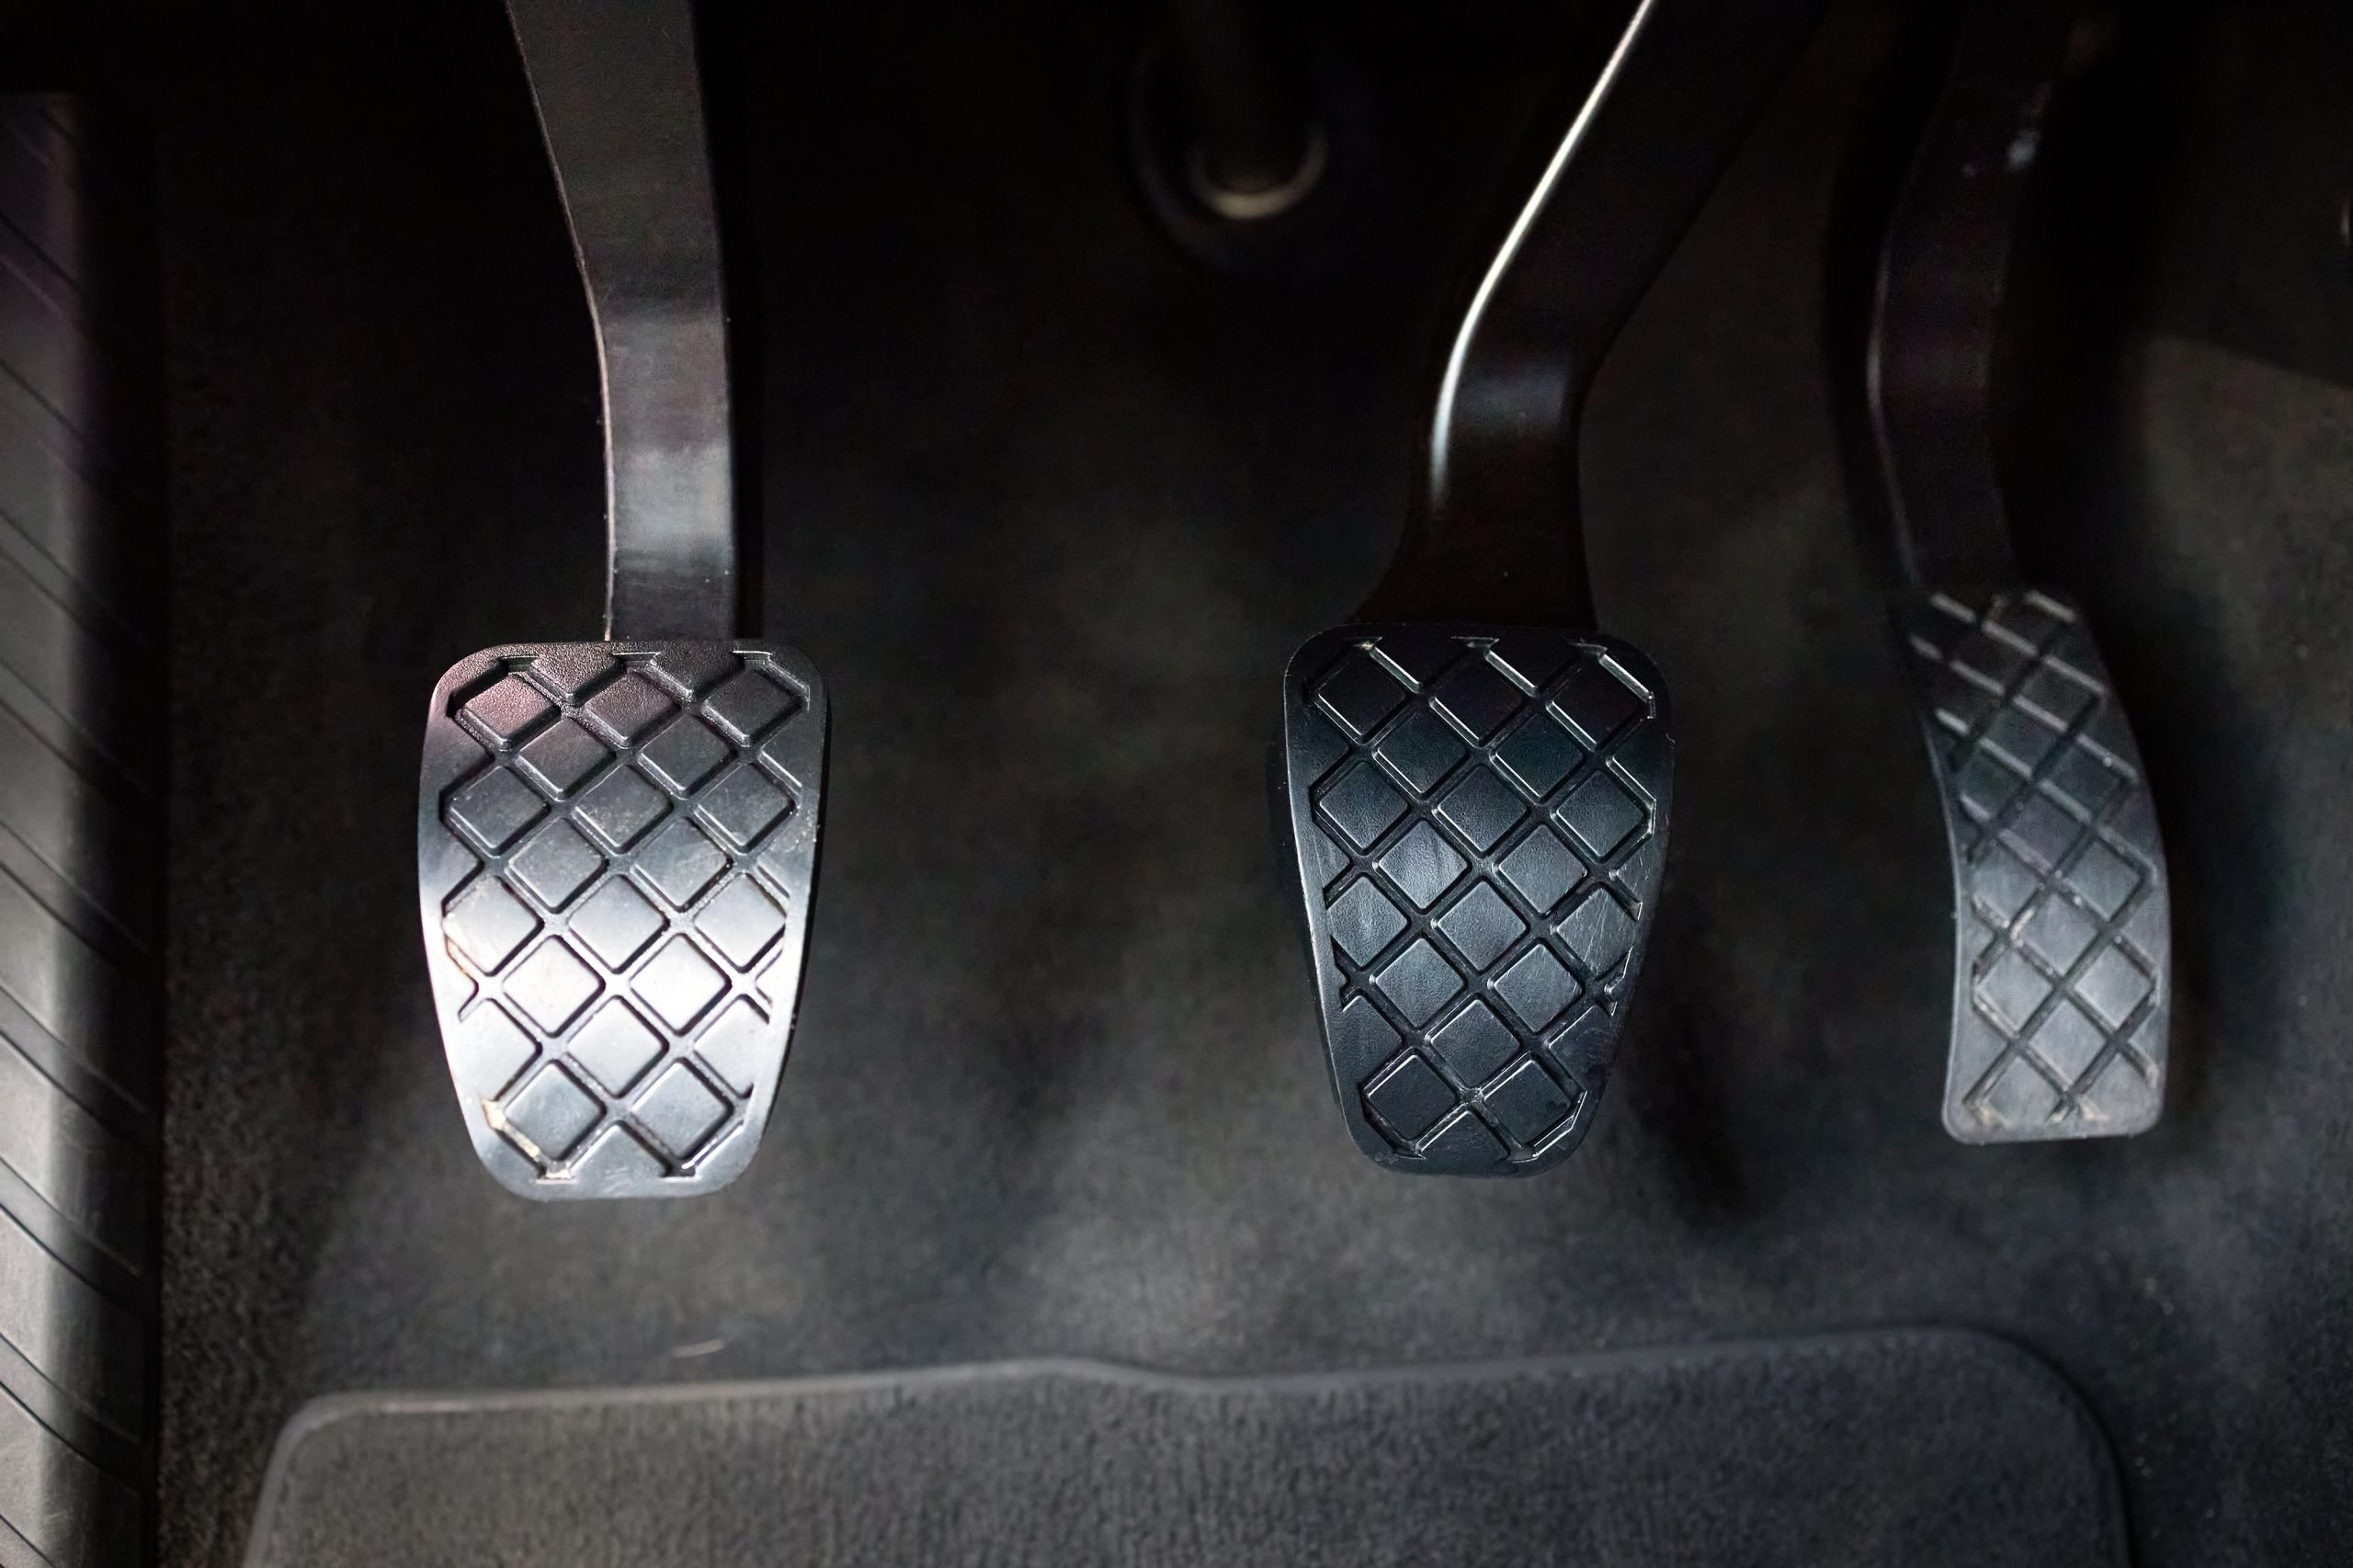 foot pedal 1